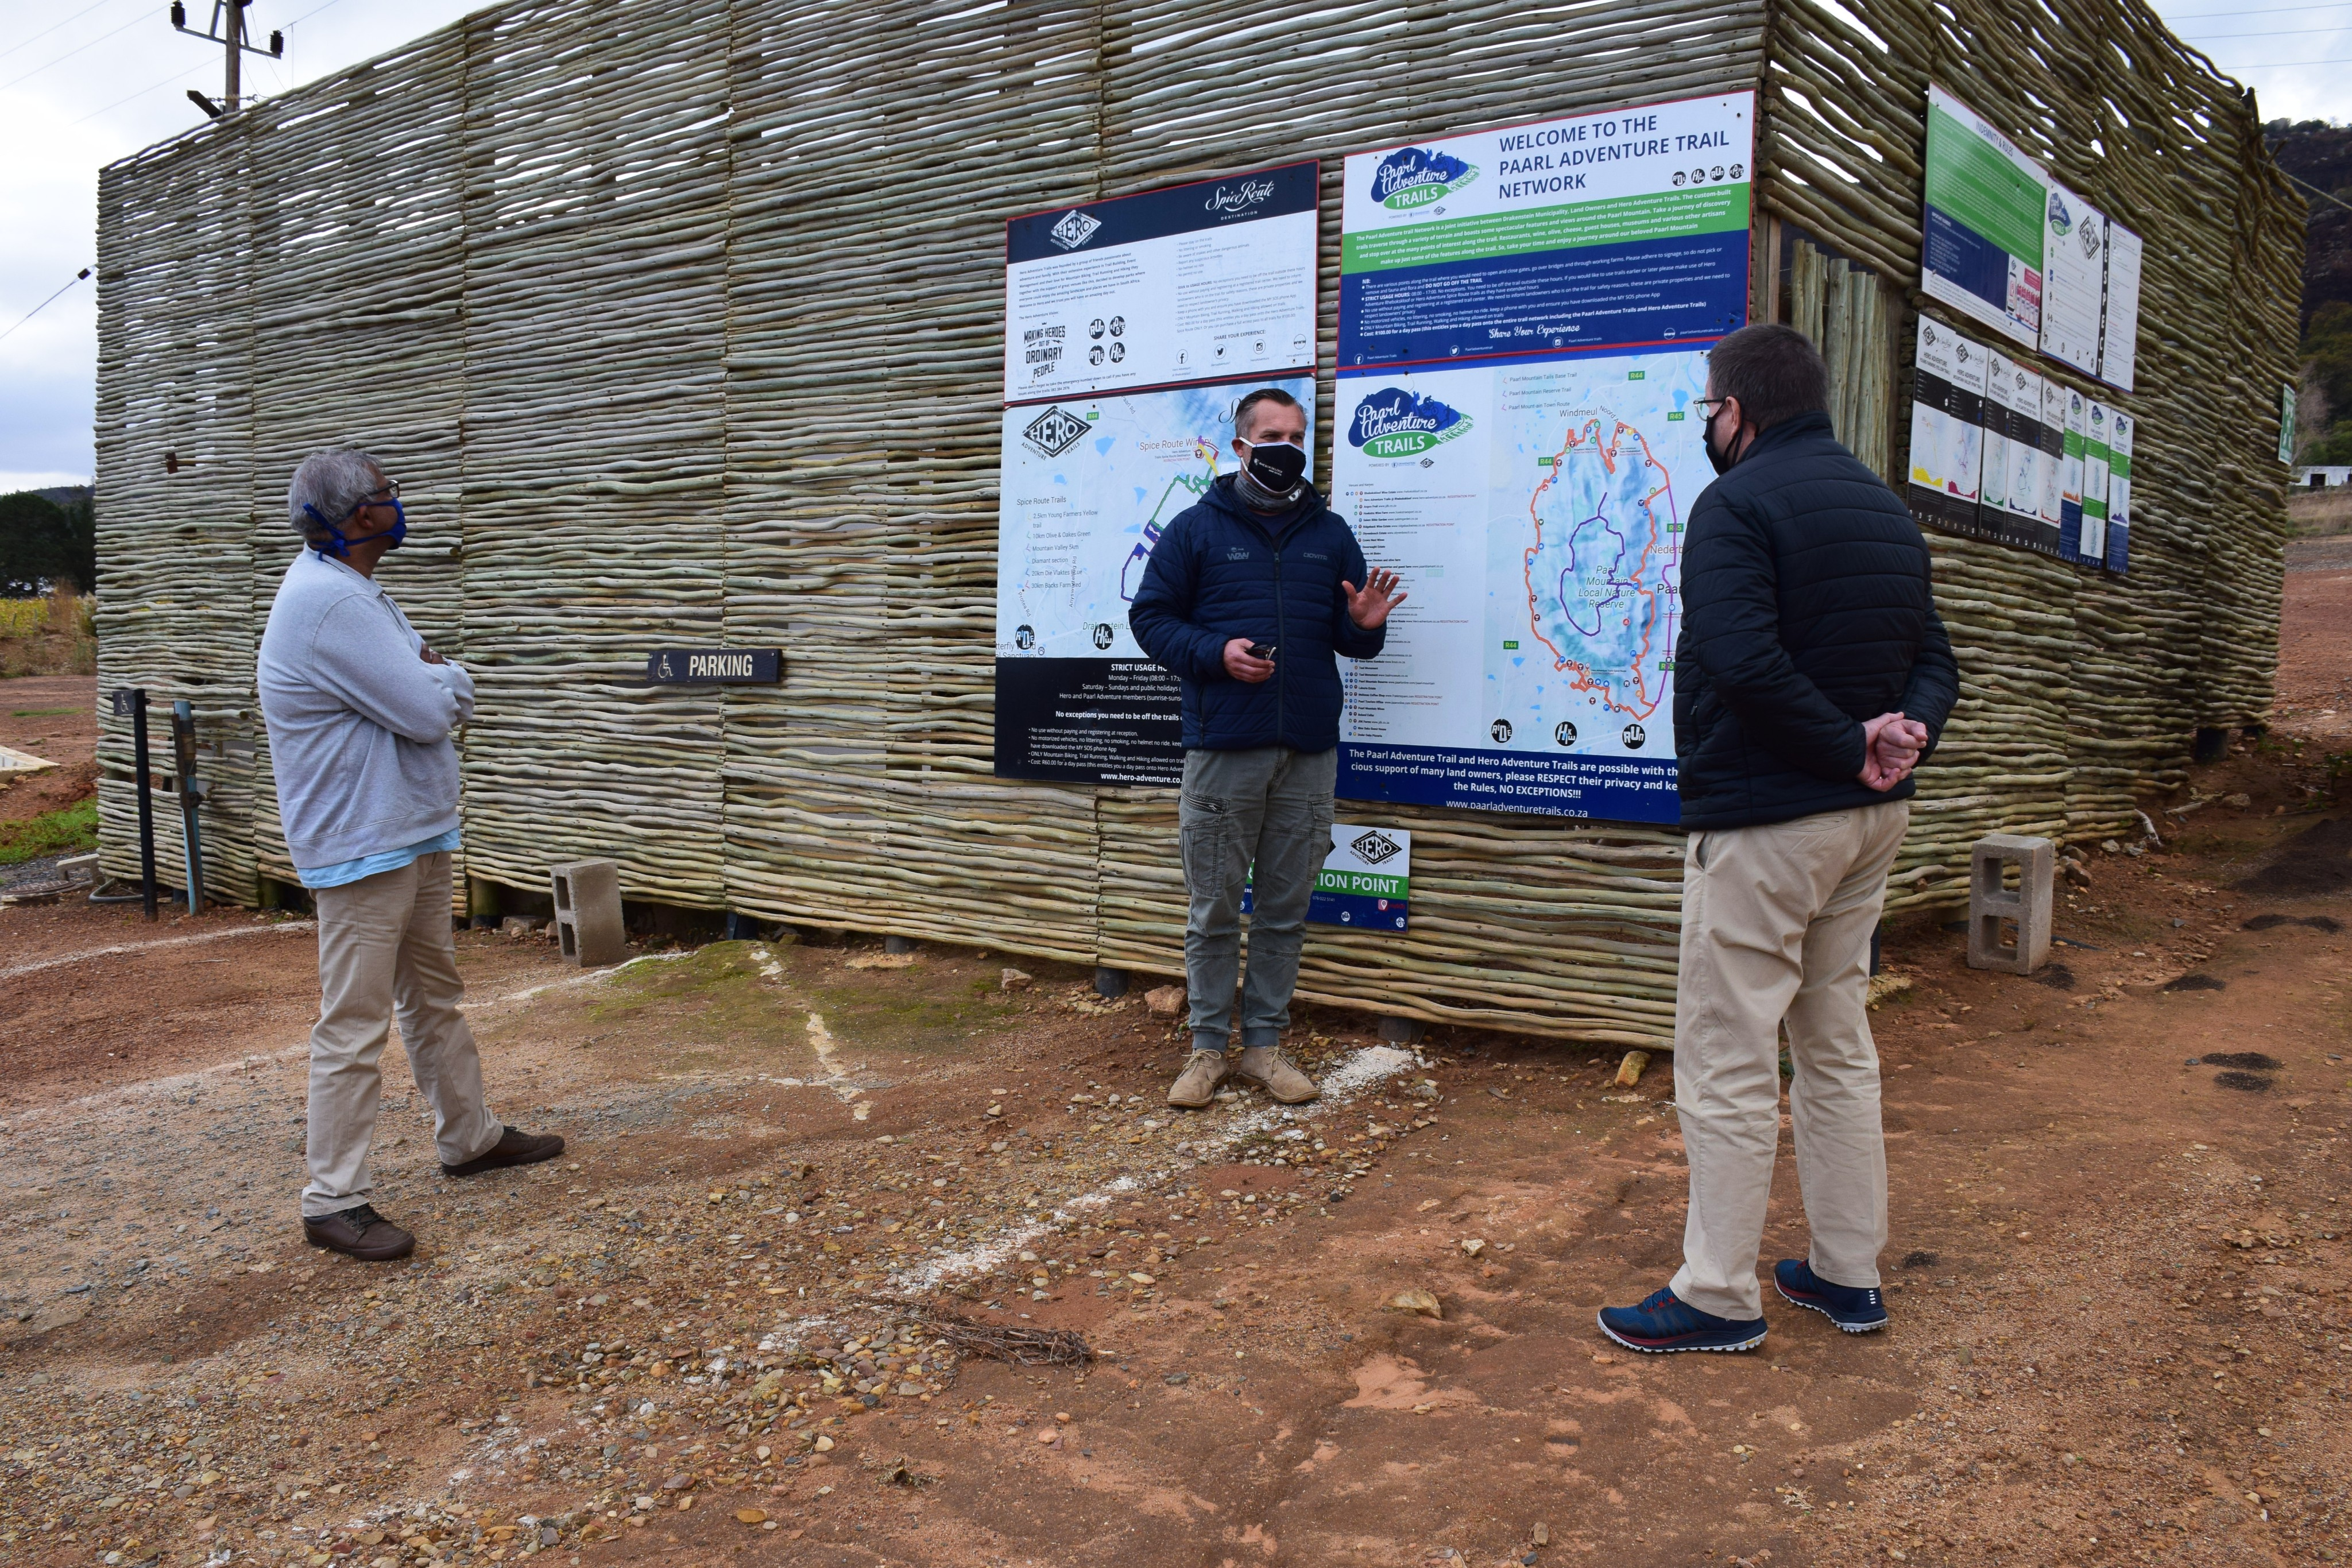 Minister Maynier visits Paarl Adventure Trails